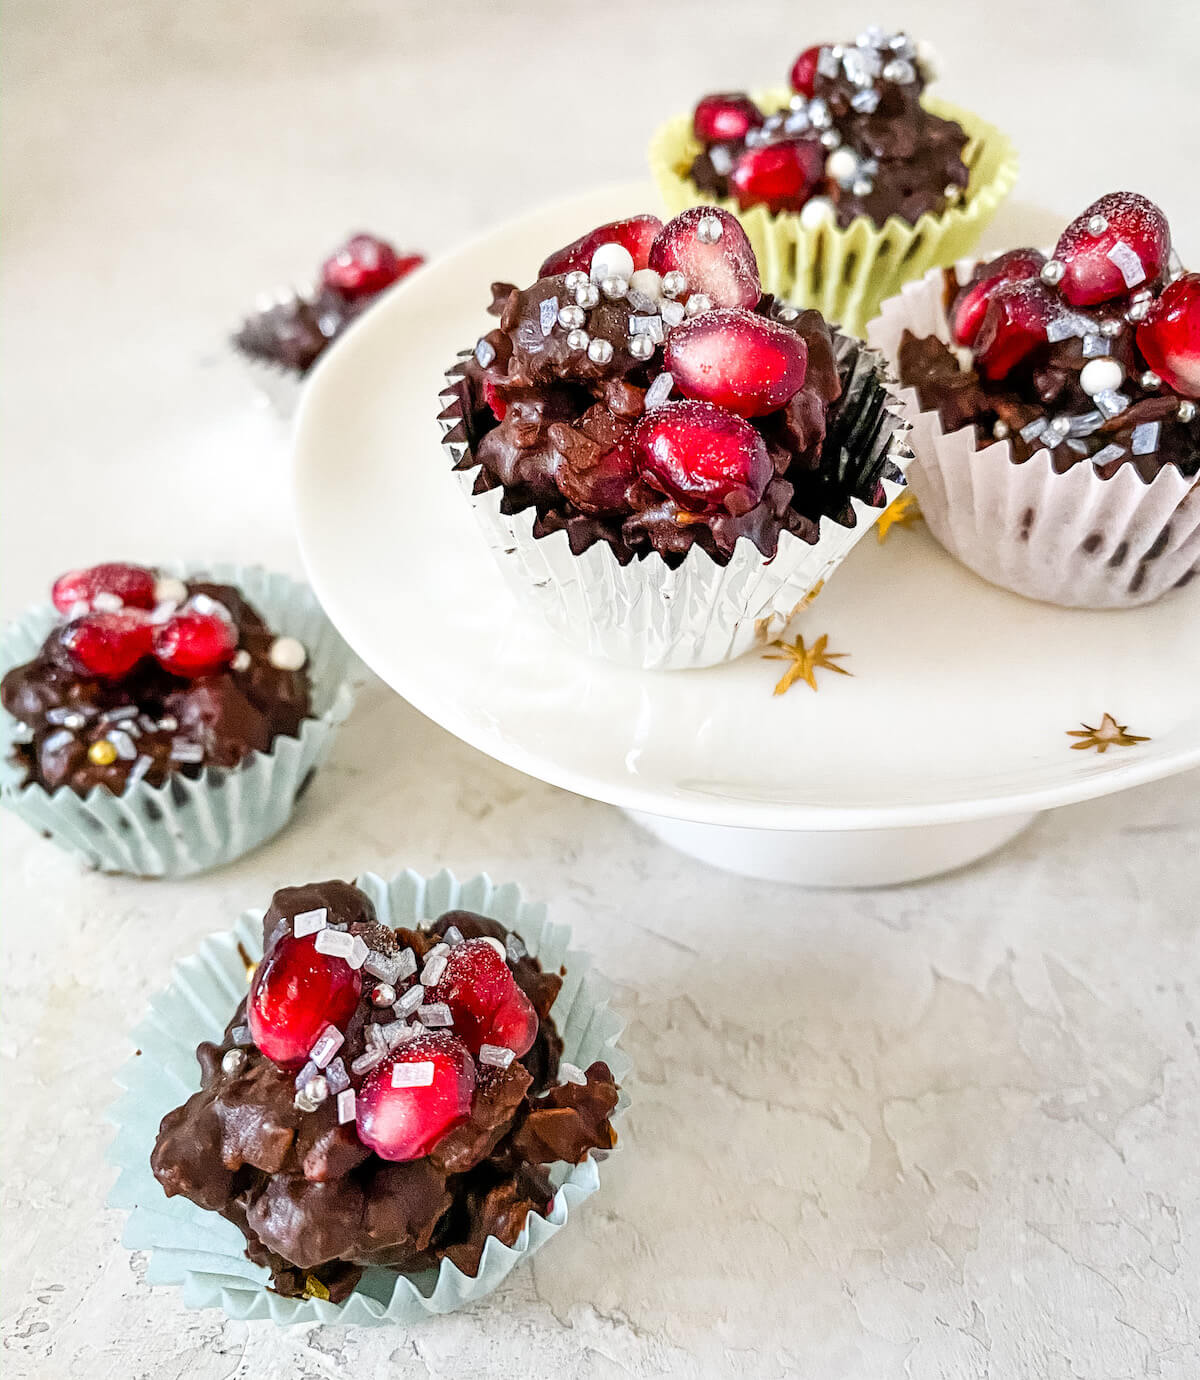 coconut and granola chocolate clusters with pomegranate